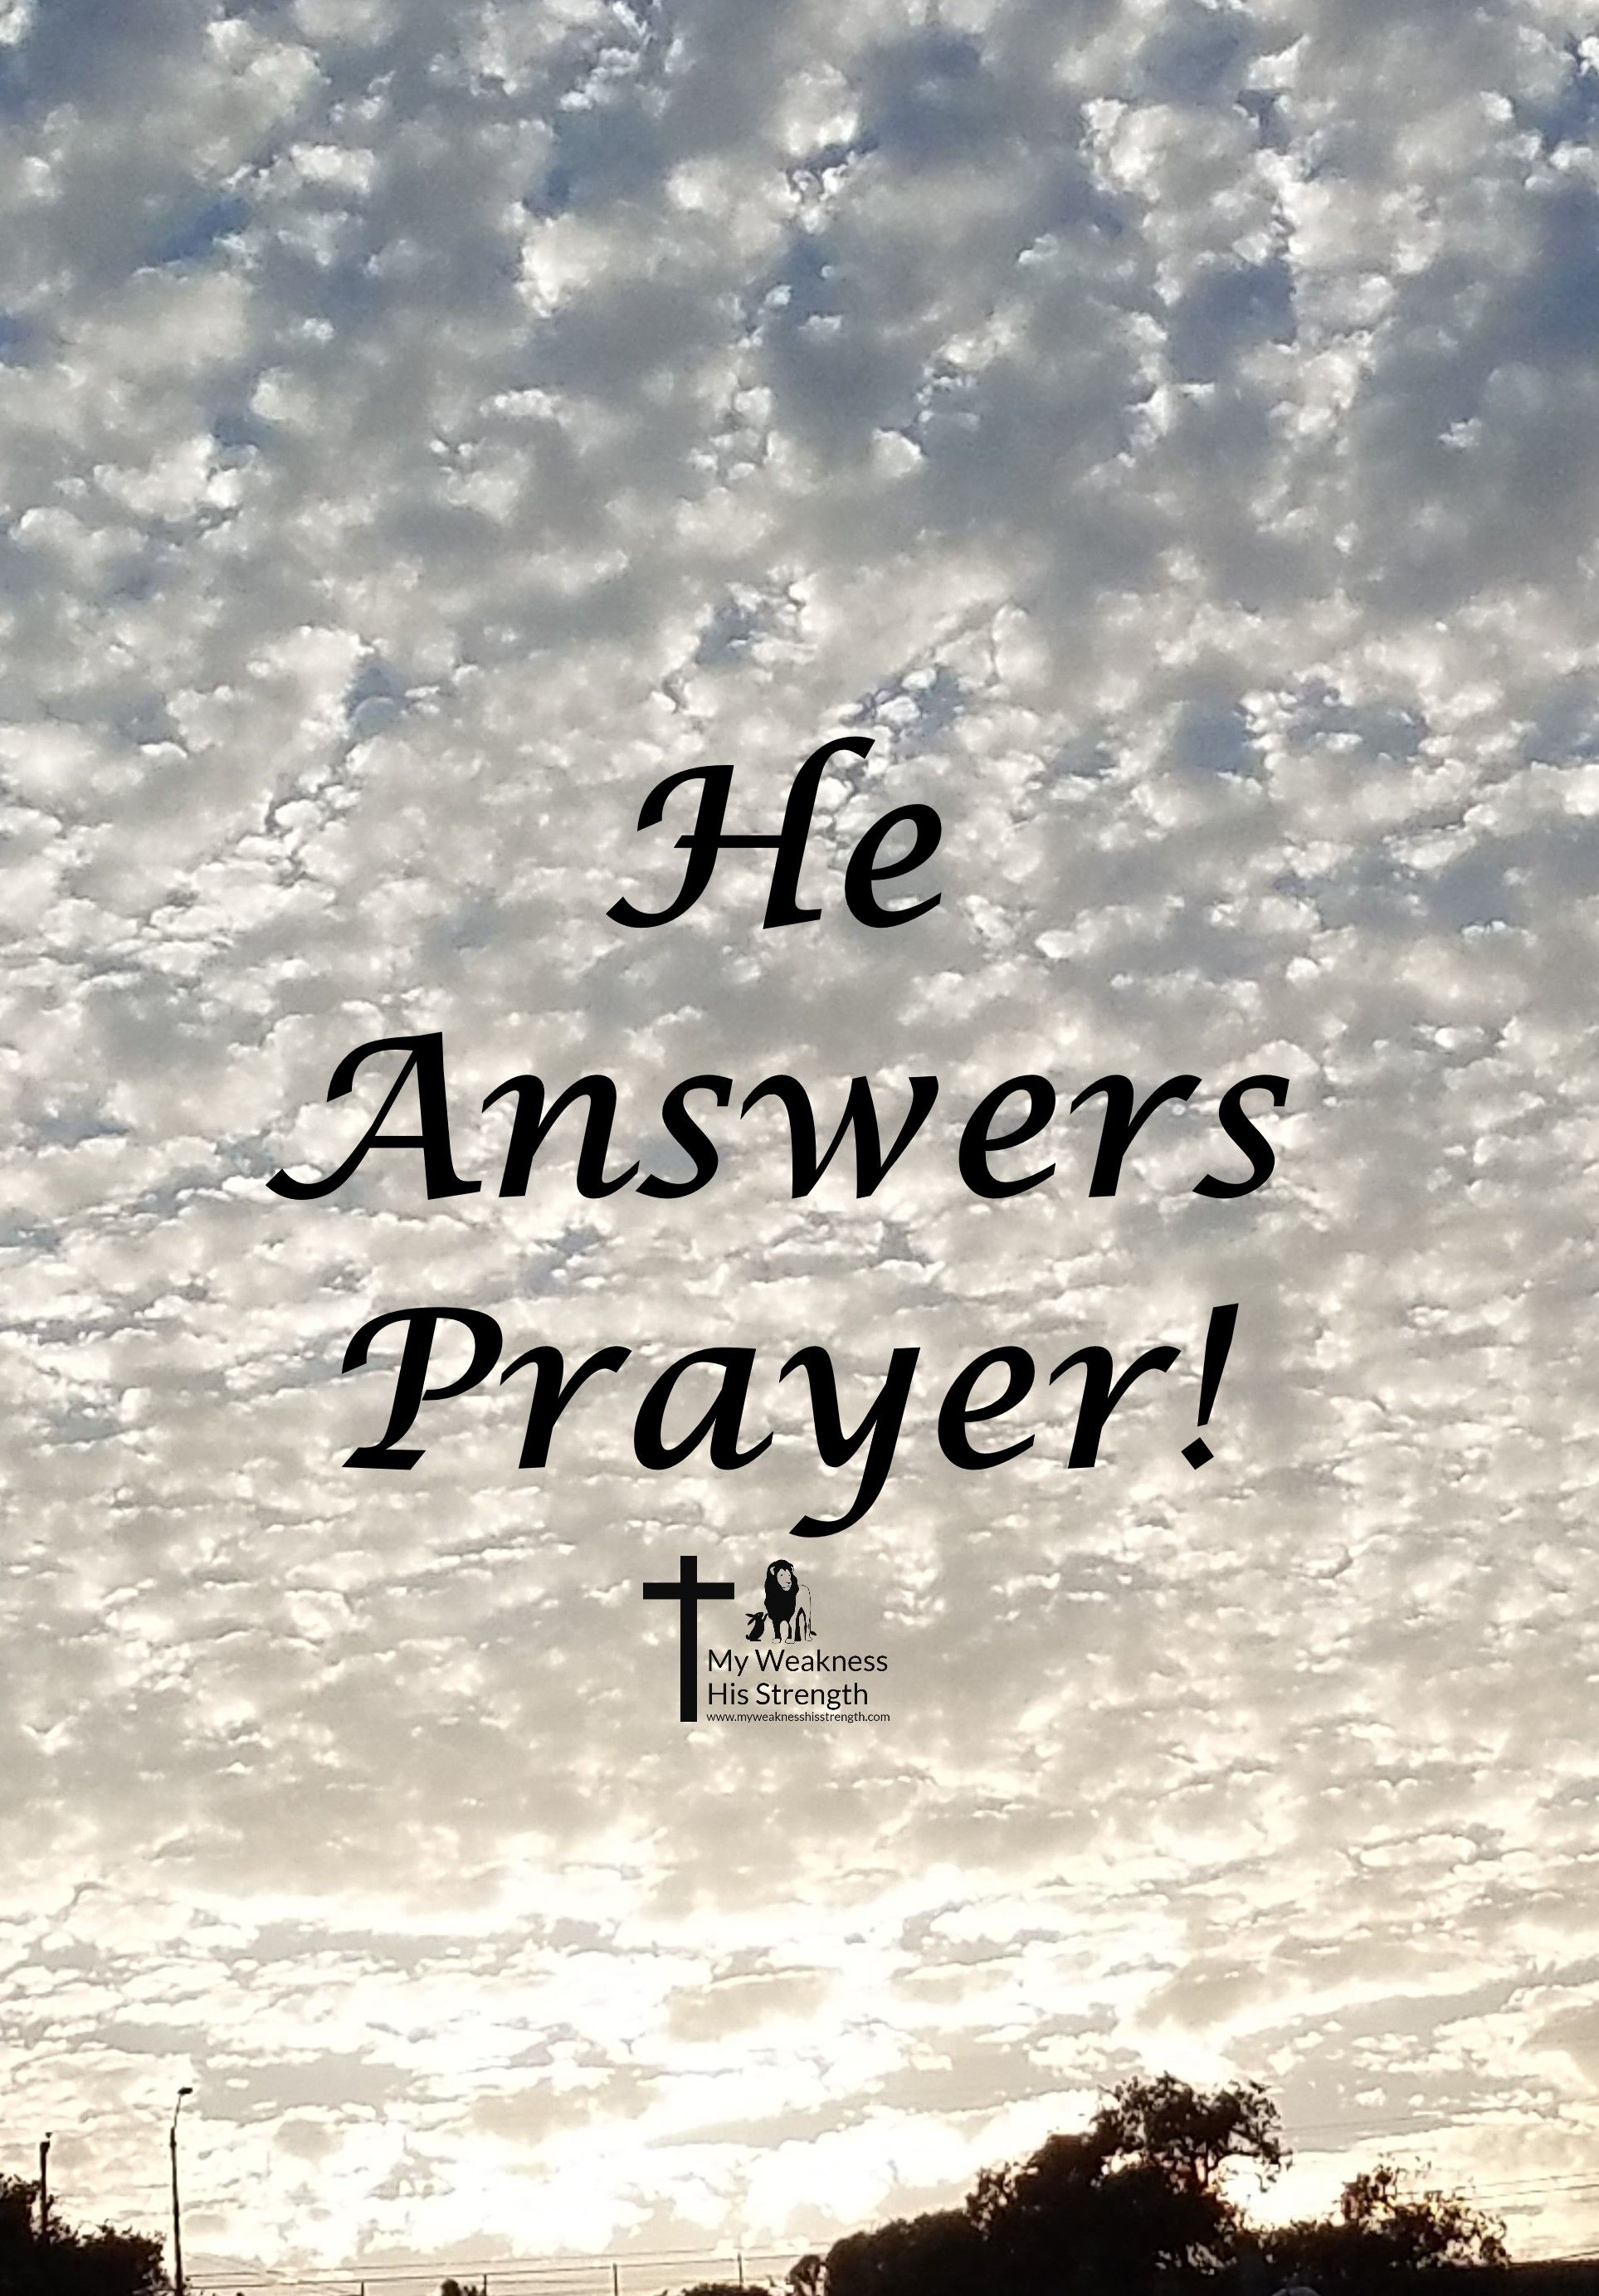 Power Of Prayer Quotes God Answers Prayer Power Of Prayer God Is Good My Weakness His